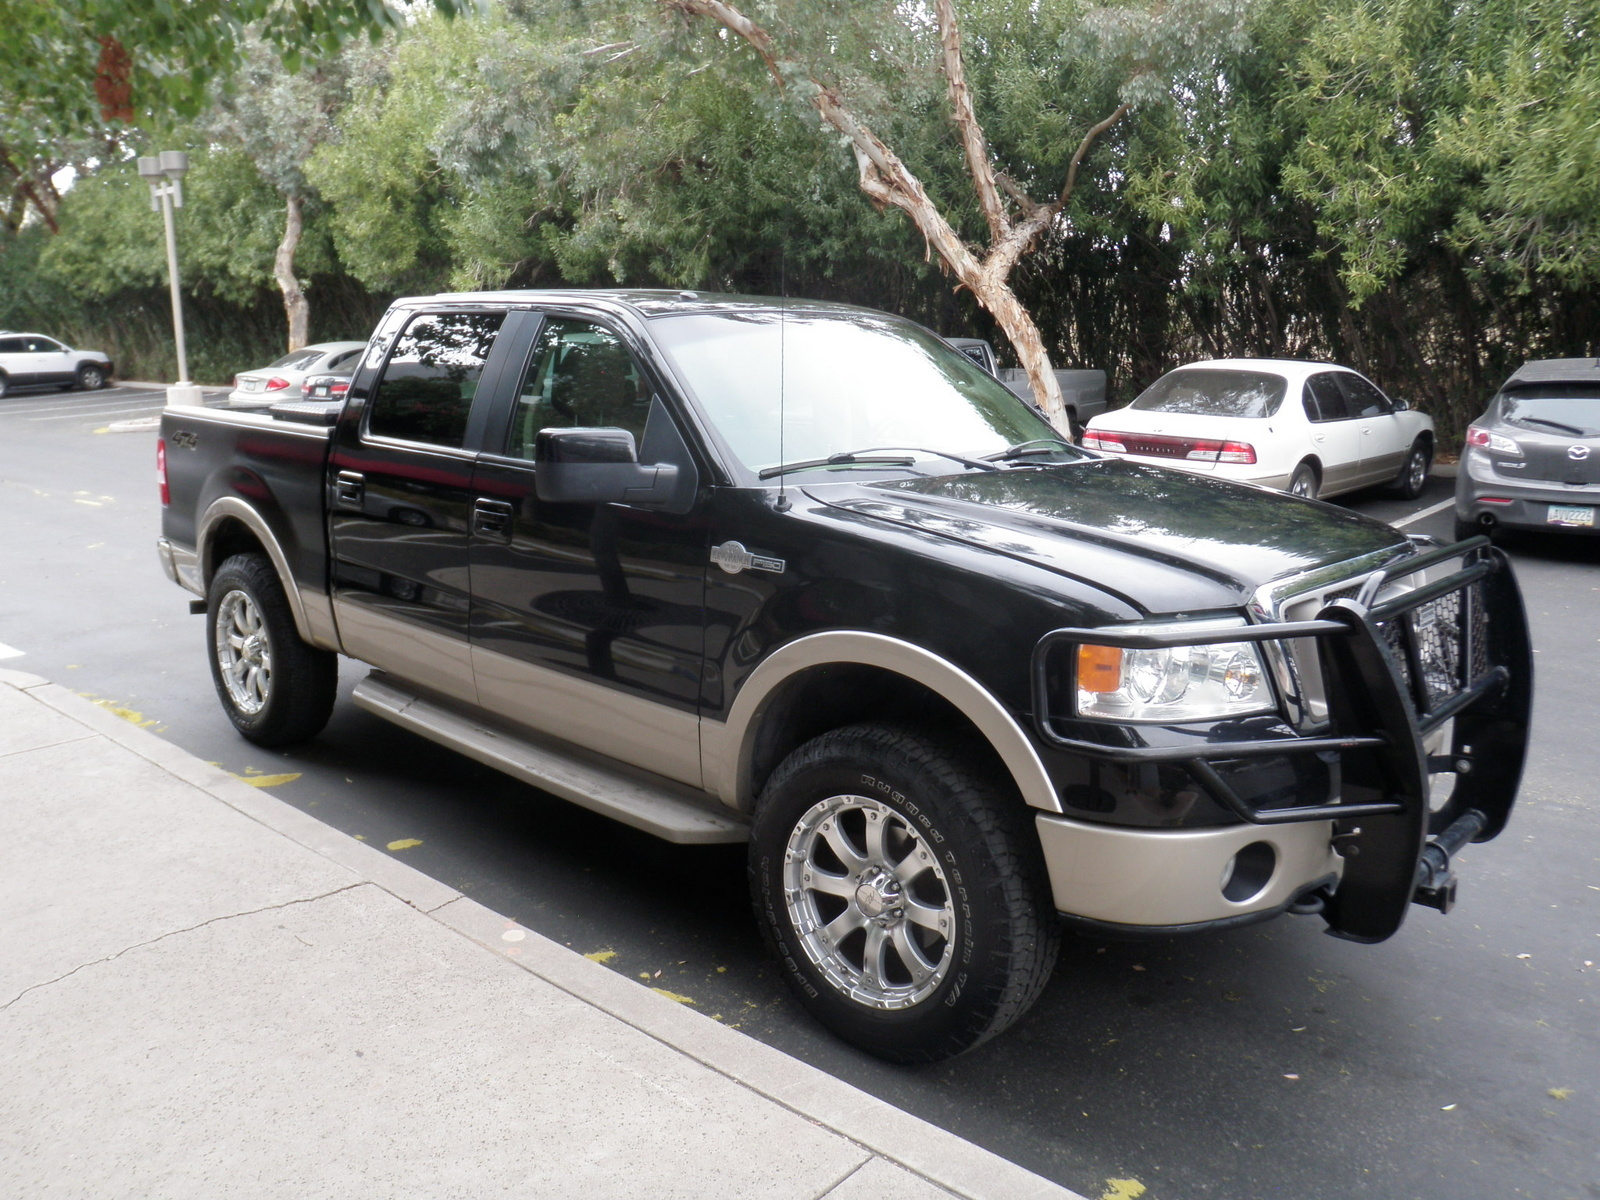 Engine 48780329 together with 2008 Ford F 150 Pictures C10427 pi36567213 likewise 2005 Ford Ranger Batter Junction Fuse Box Diagram besides 2006 Ford F 150 Pictures C3720 additionally Lrv Protecta Truck Bed Mats. on 1999 harley davidson f150 interior